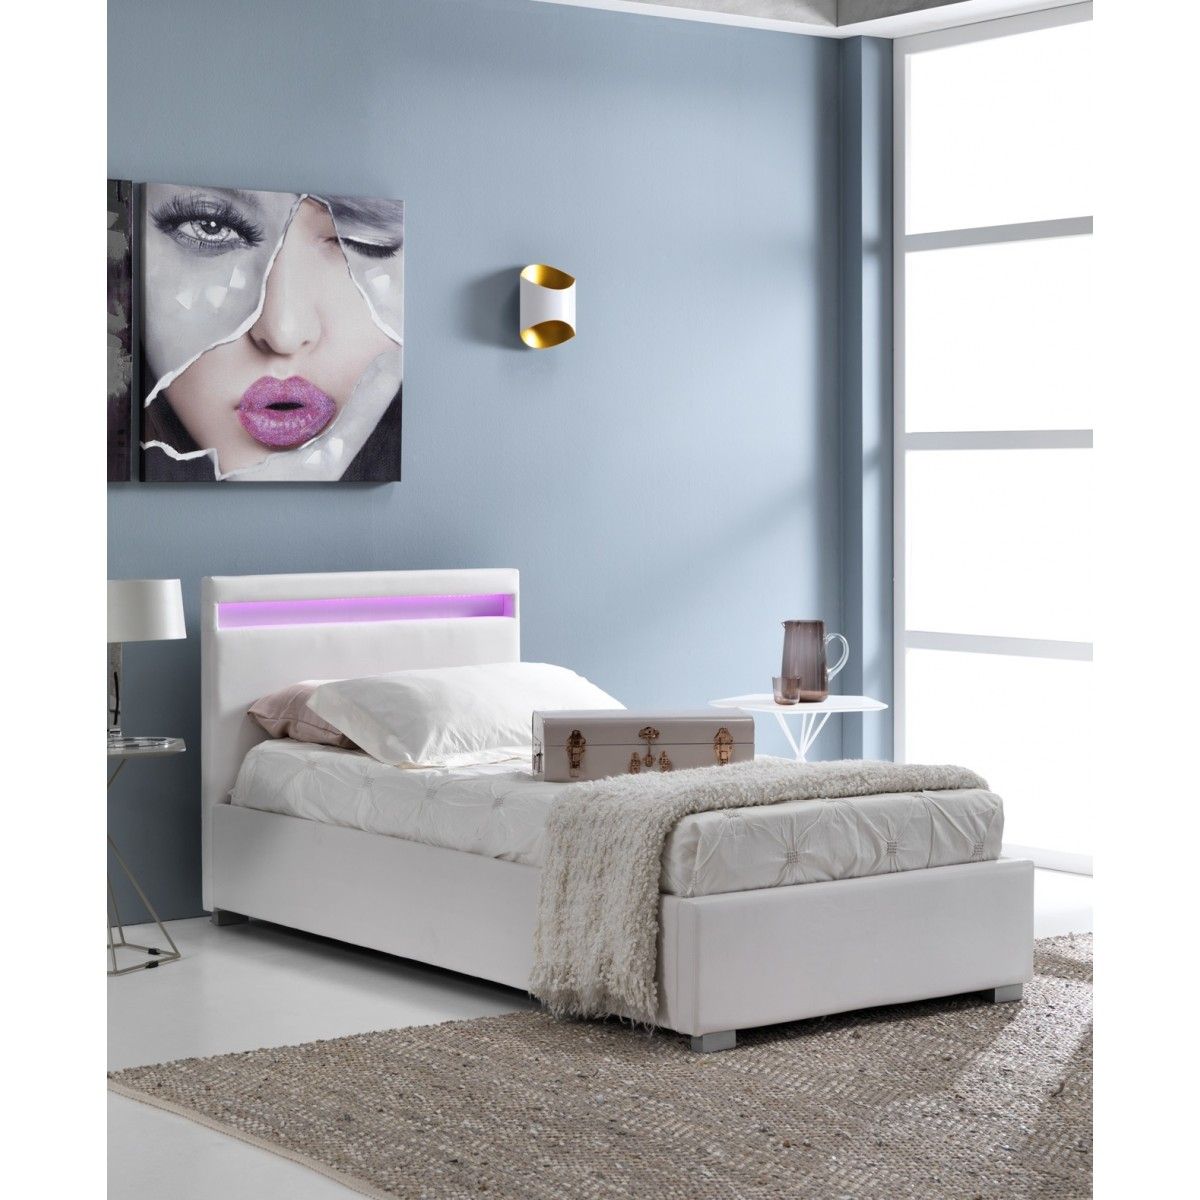 Letto Singolo Moderno.Letto Singolo Moderno Con Contenitore In Similpelle Bianco Con Luce